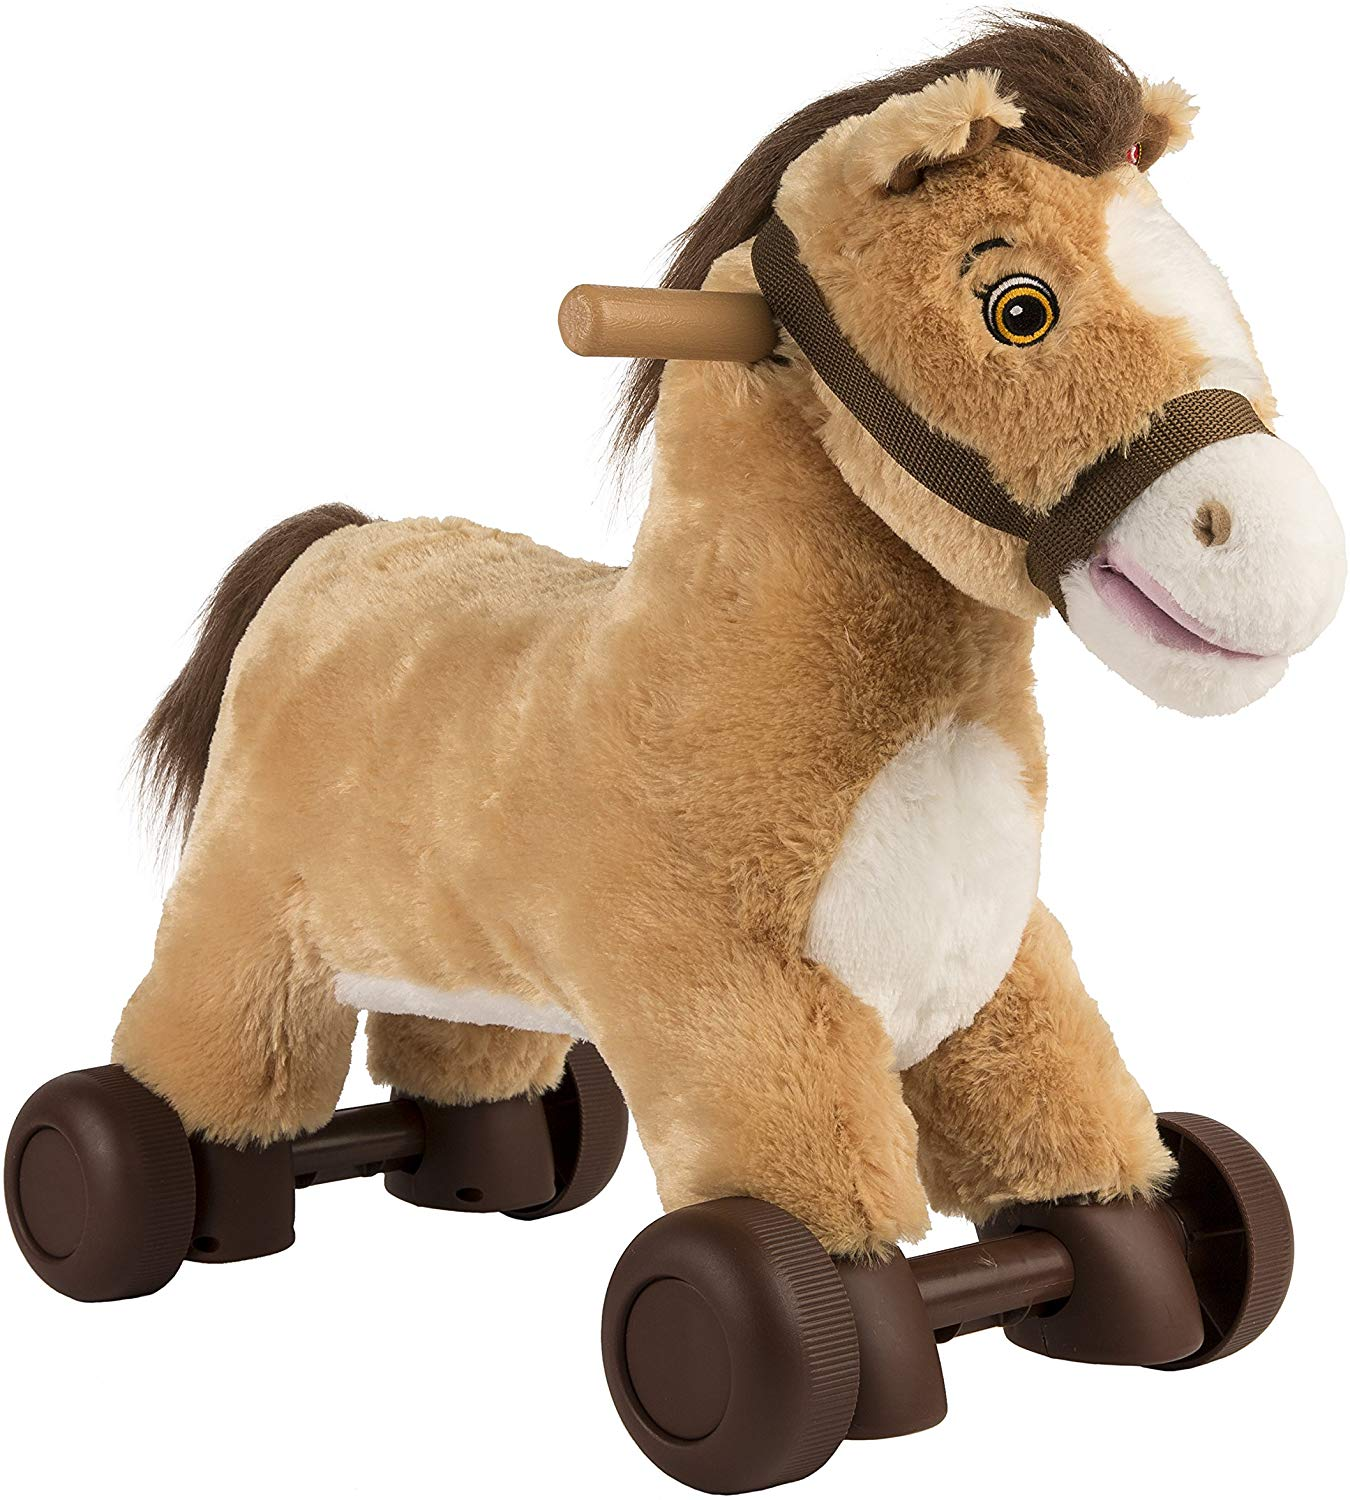 Rockin' Rider Ride-on 2-in-1 Pony